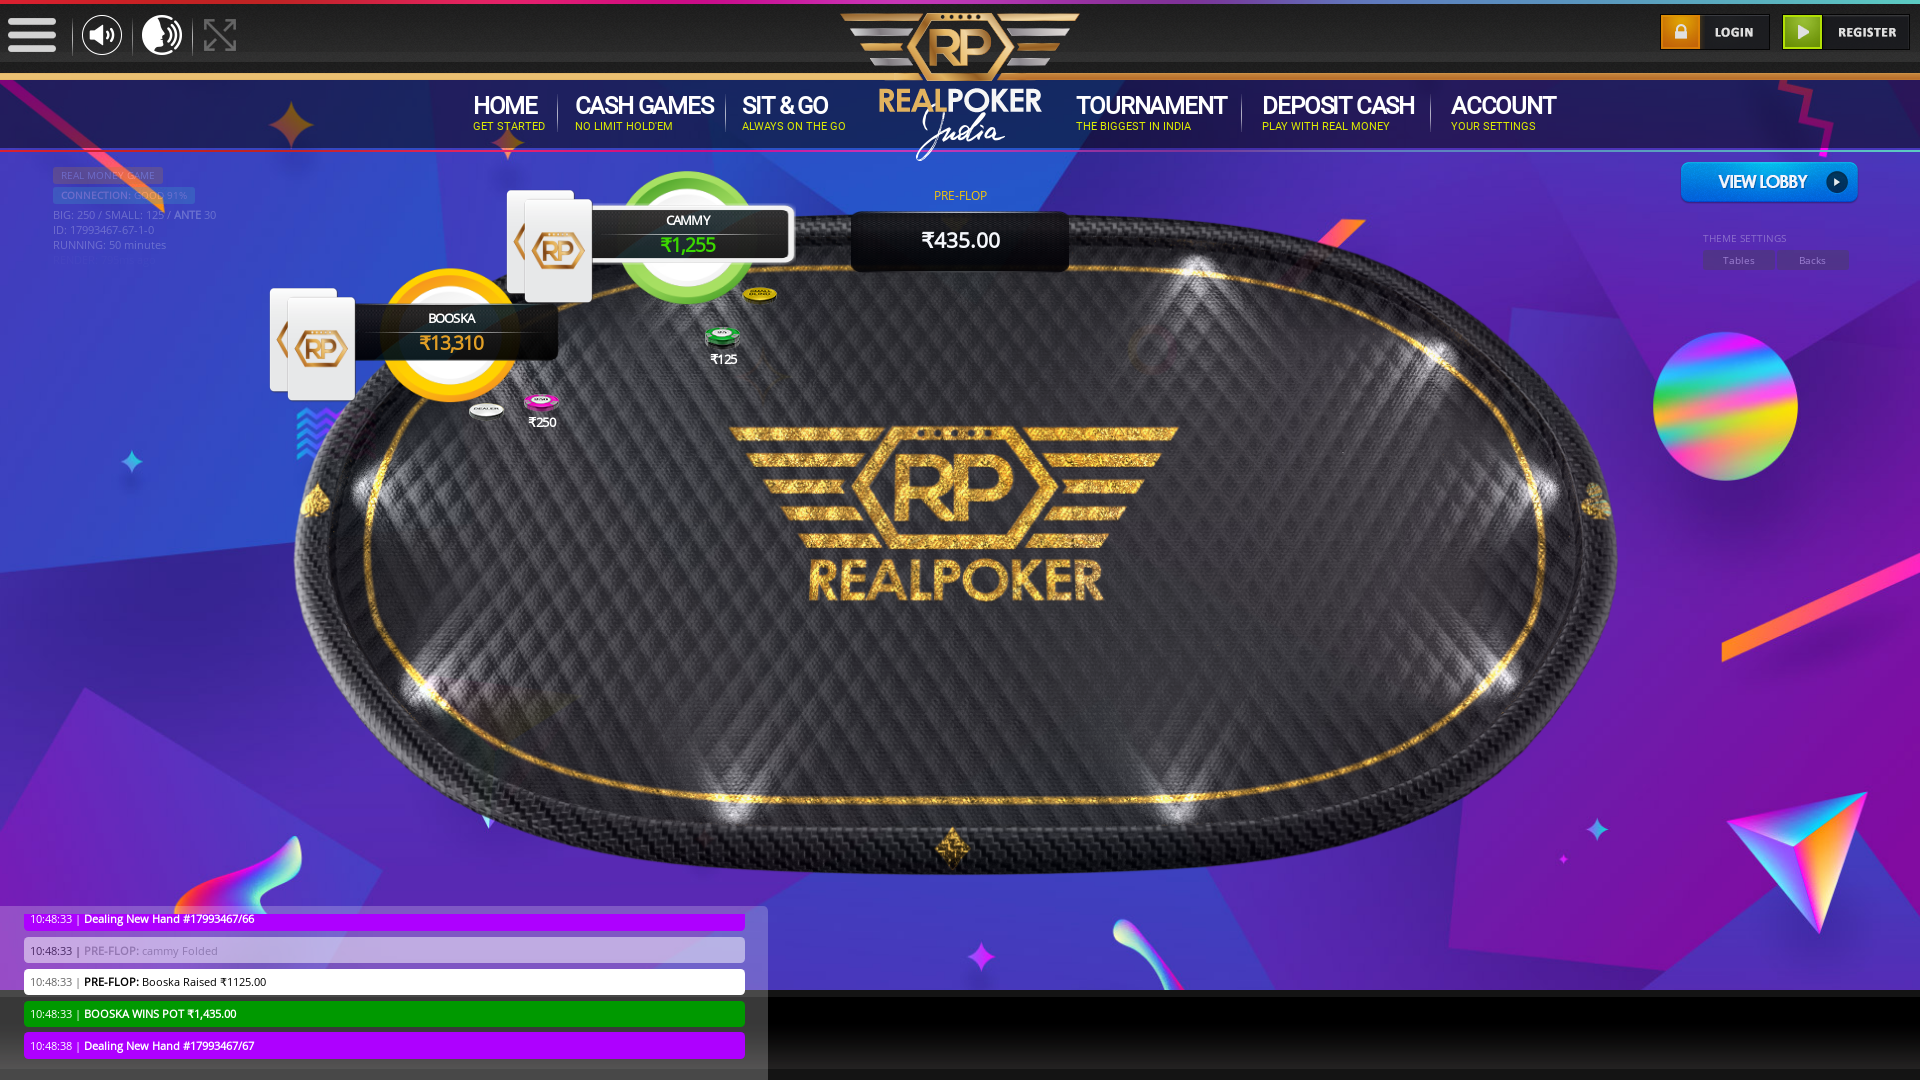 10 player texas holdem table at real poker with the table id 17993467